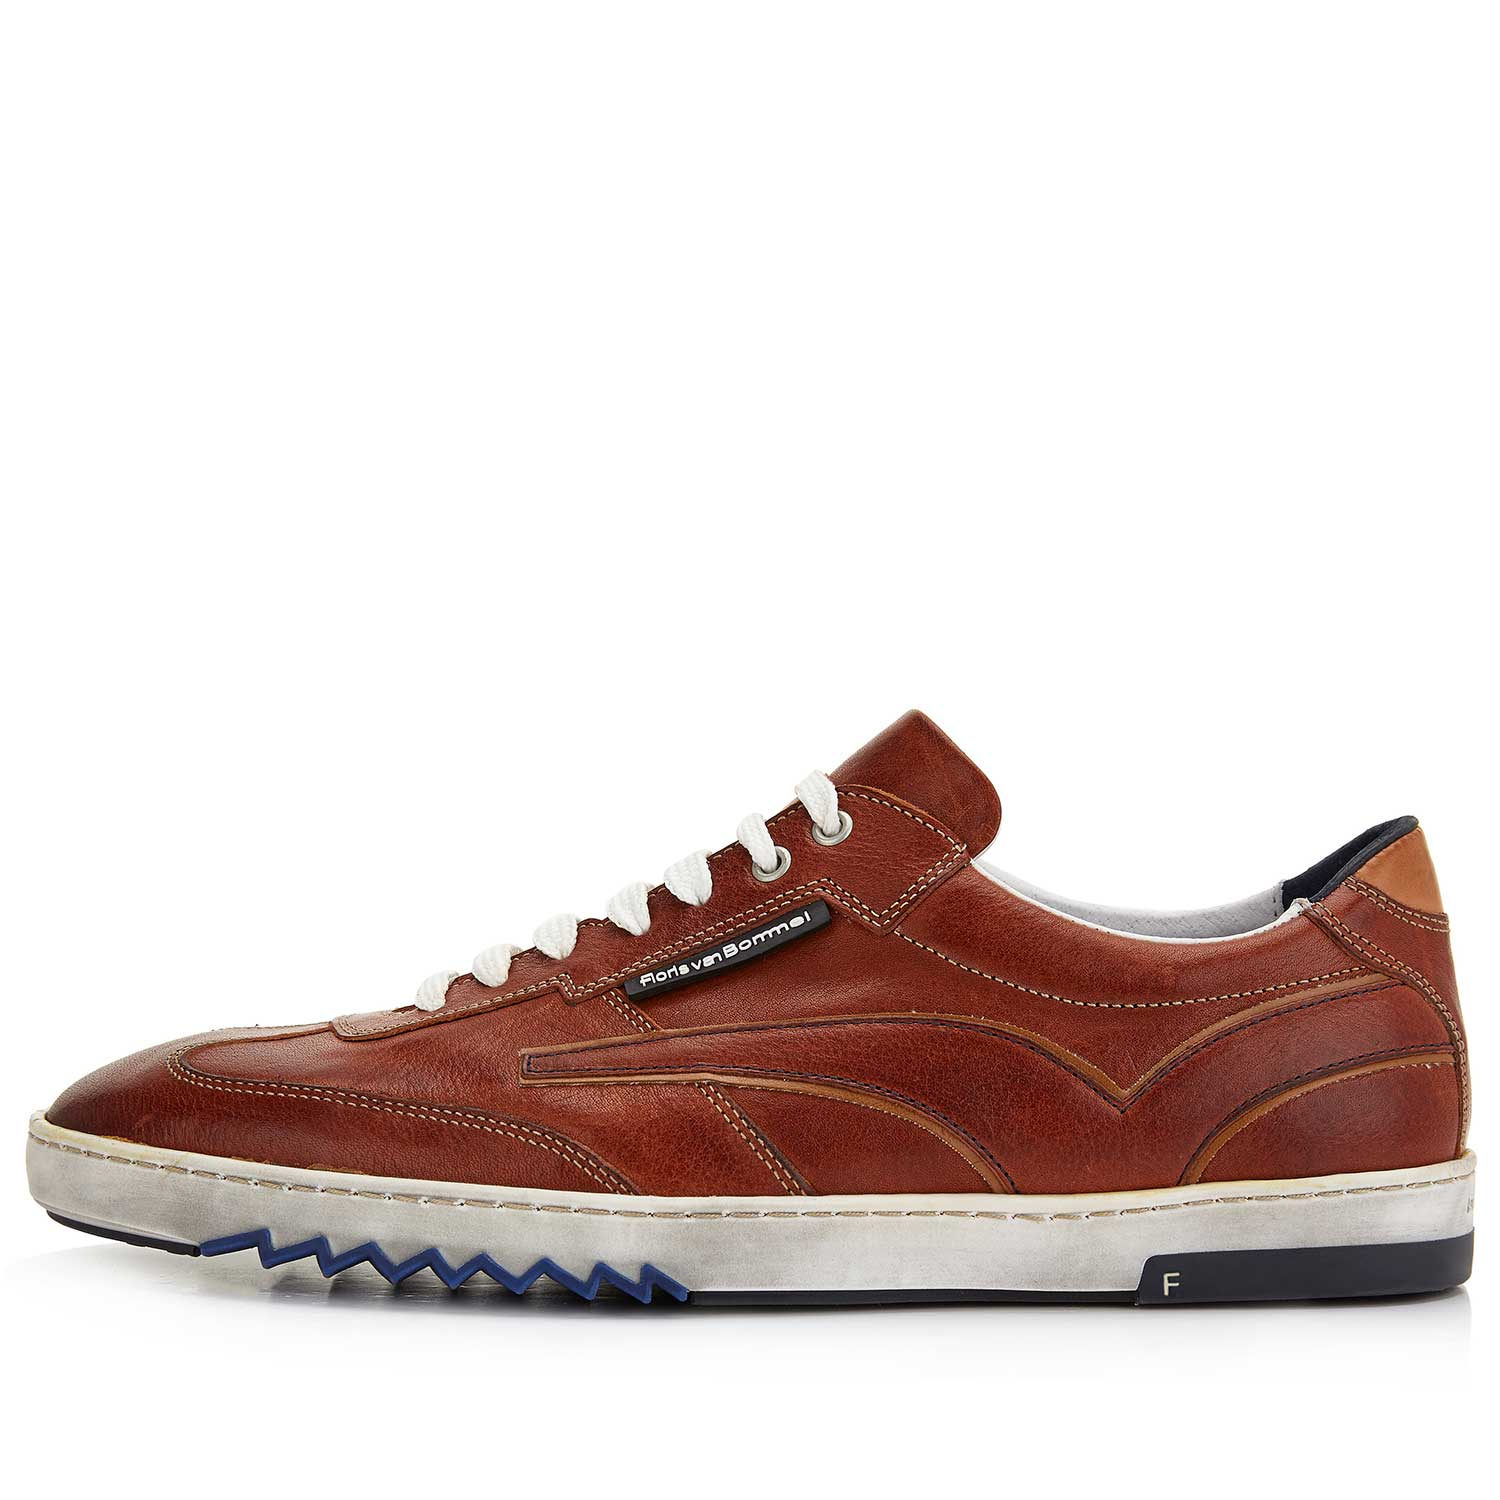 16074/02 - Cognac-coloured leather sneaker